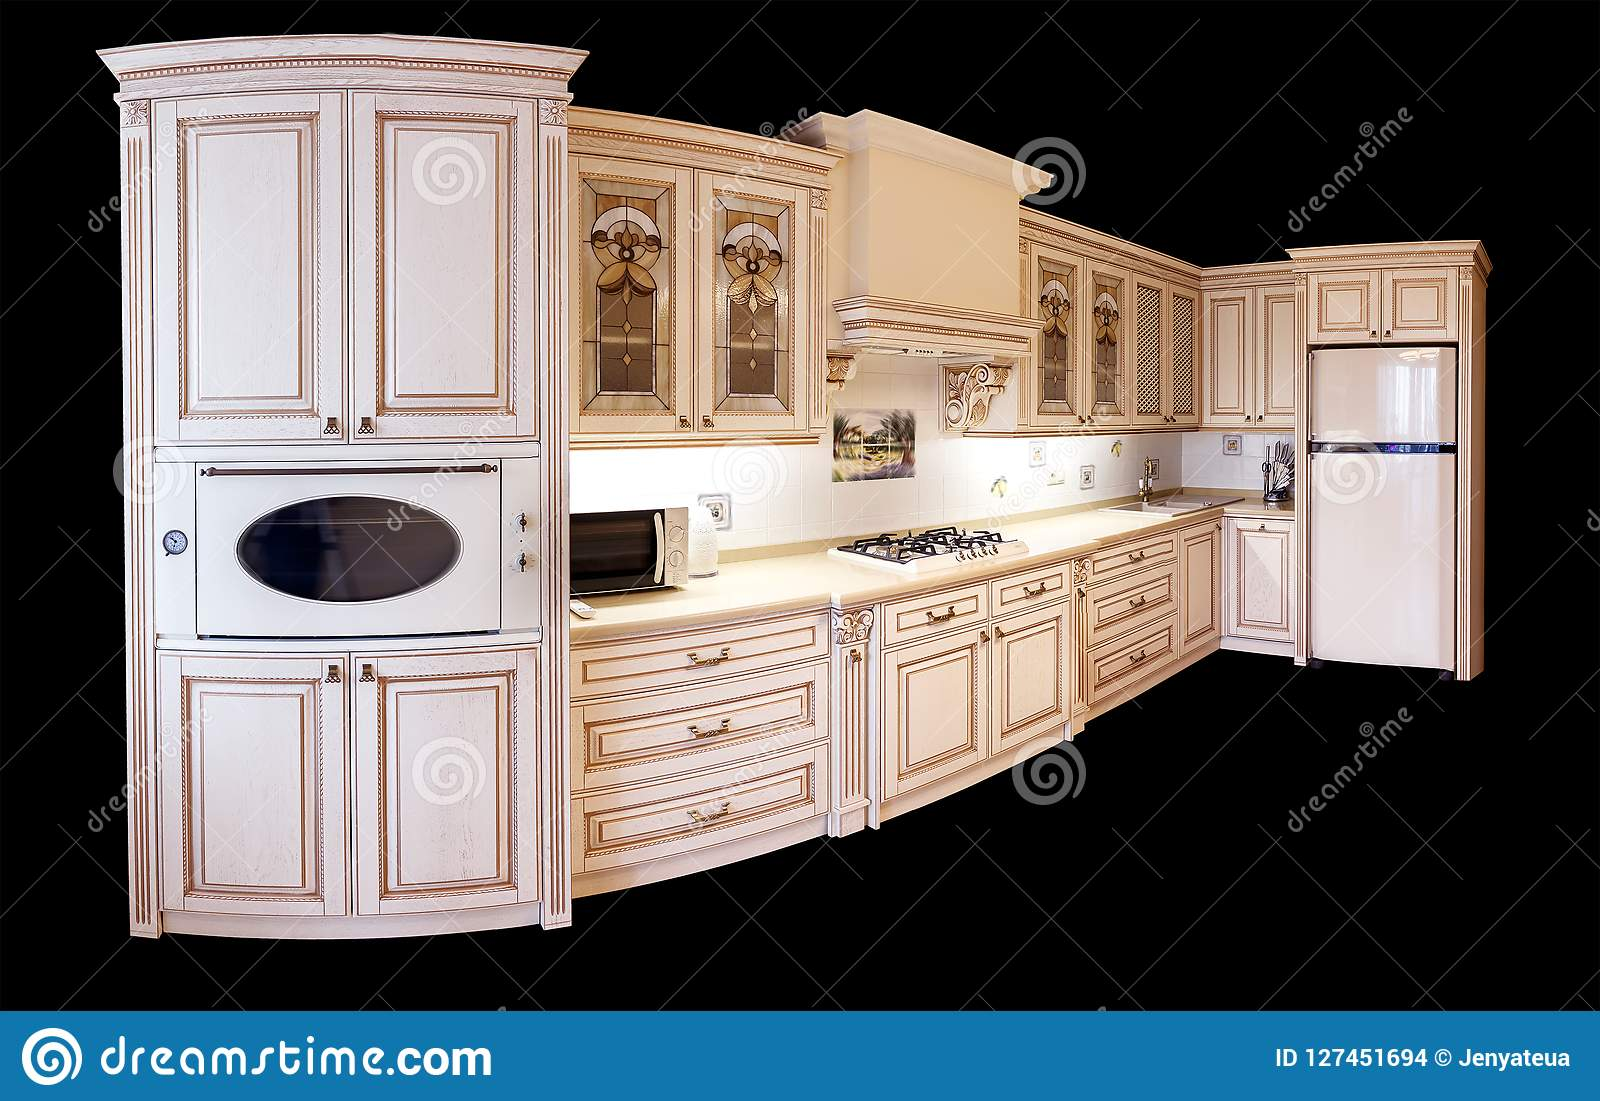 High end luxury furniture interior of angular modern furniture for a kitchen in classic